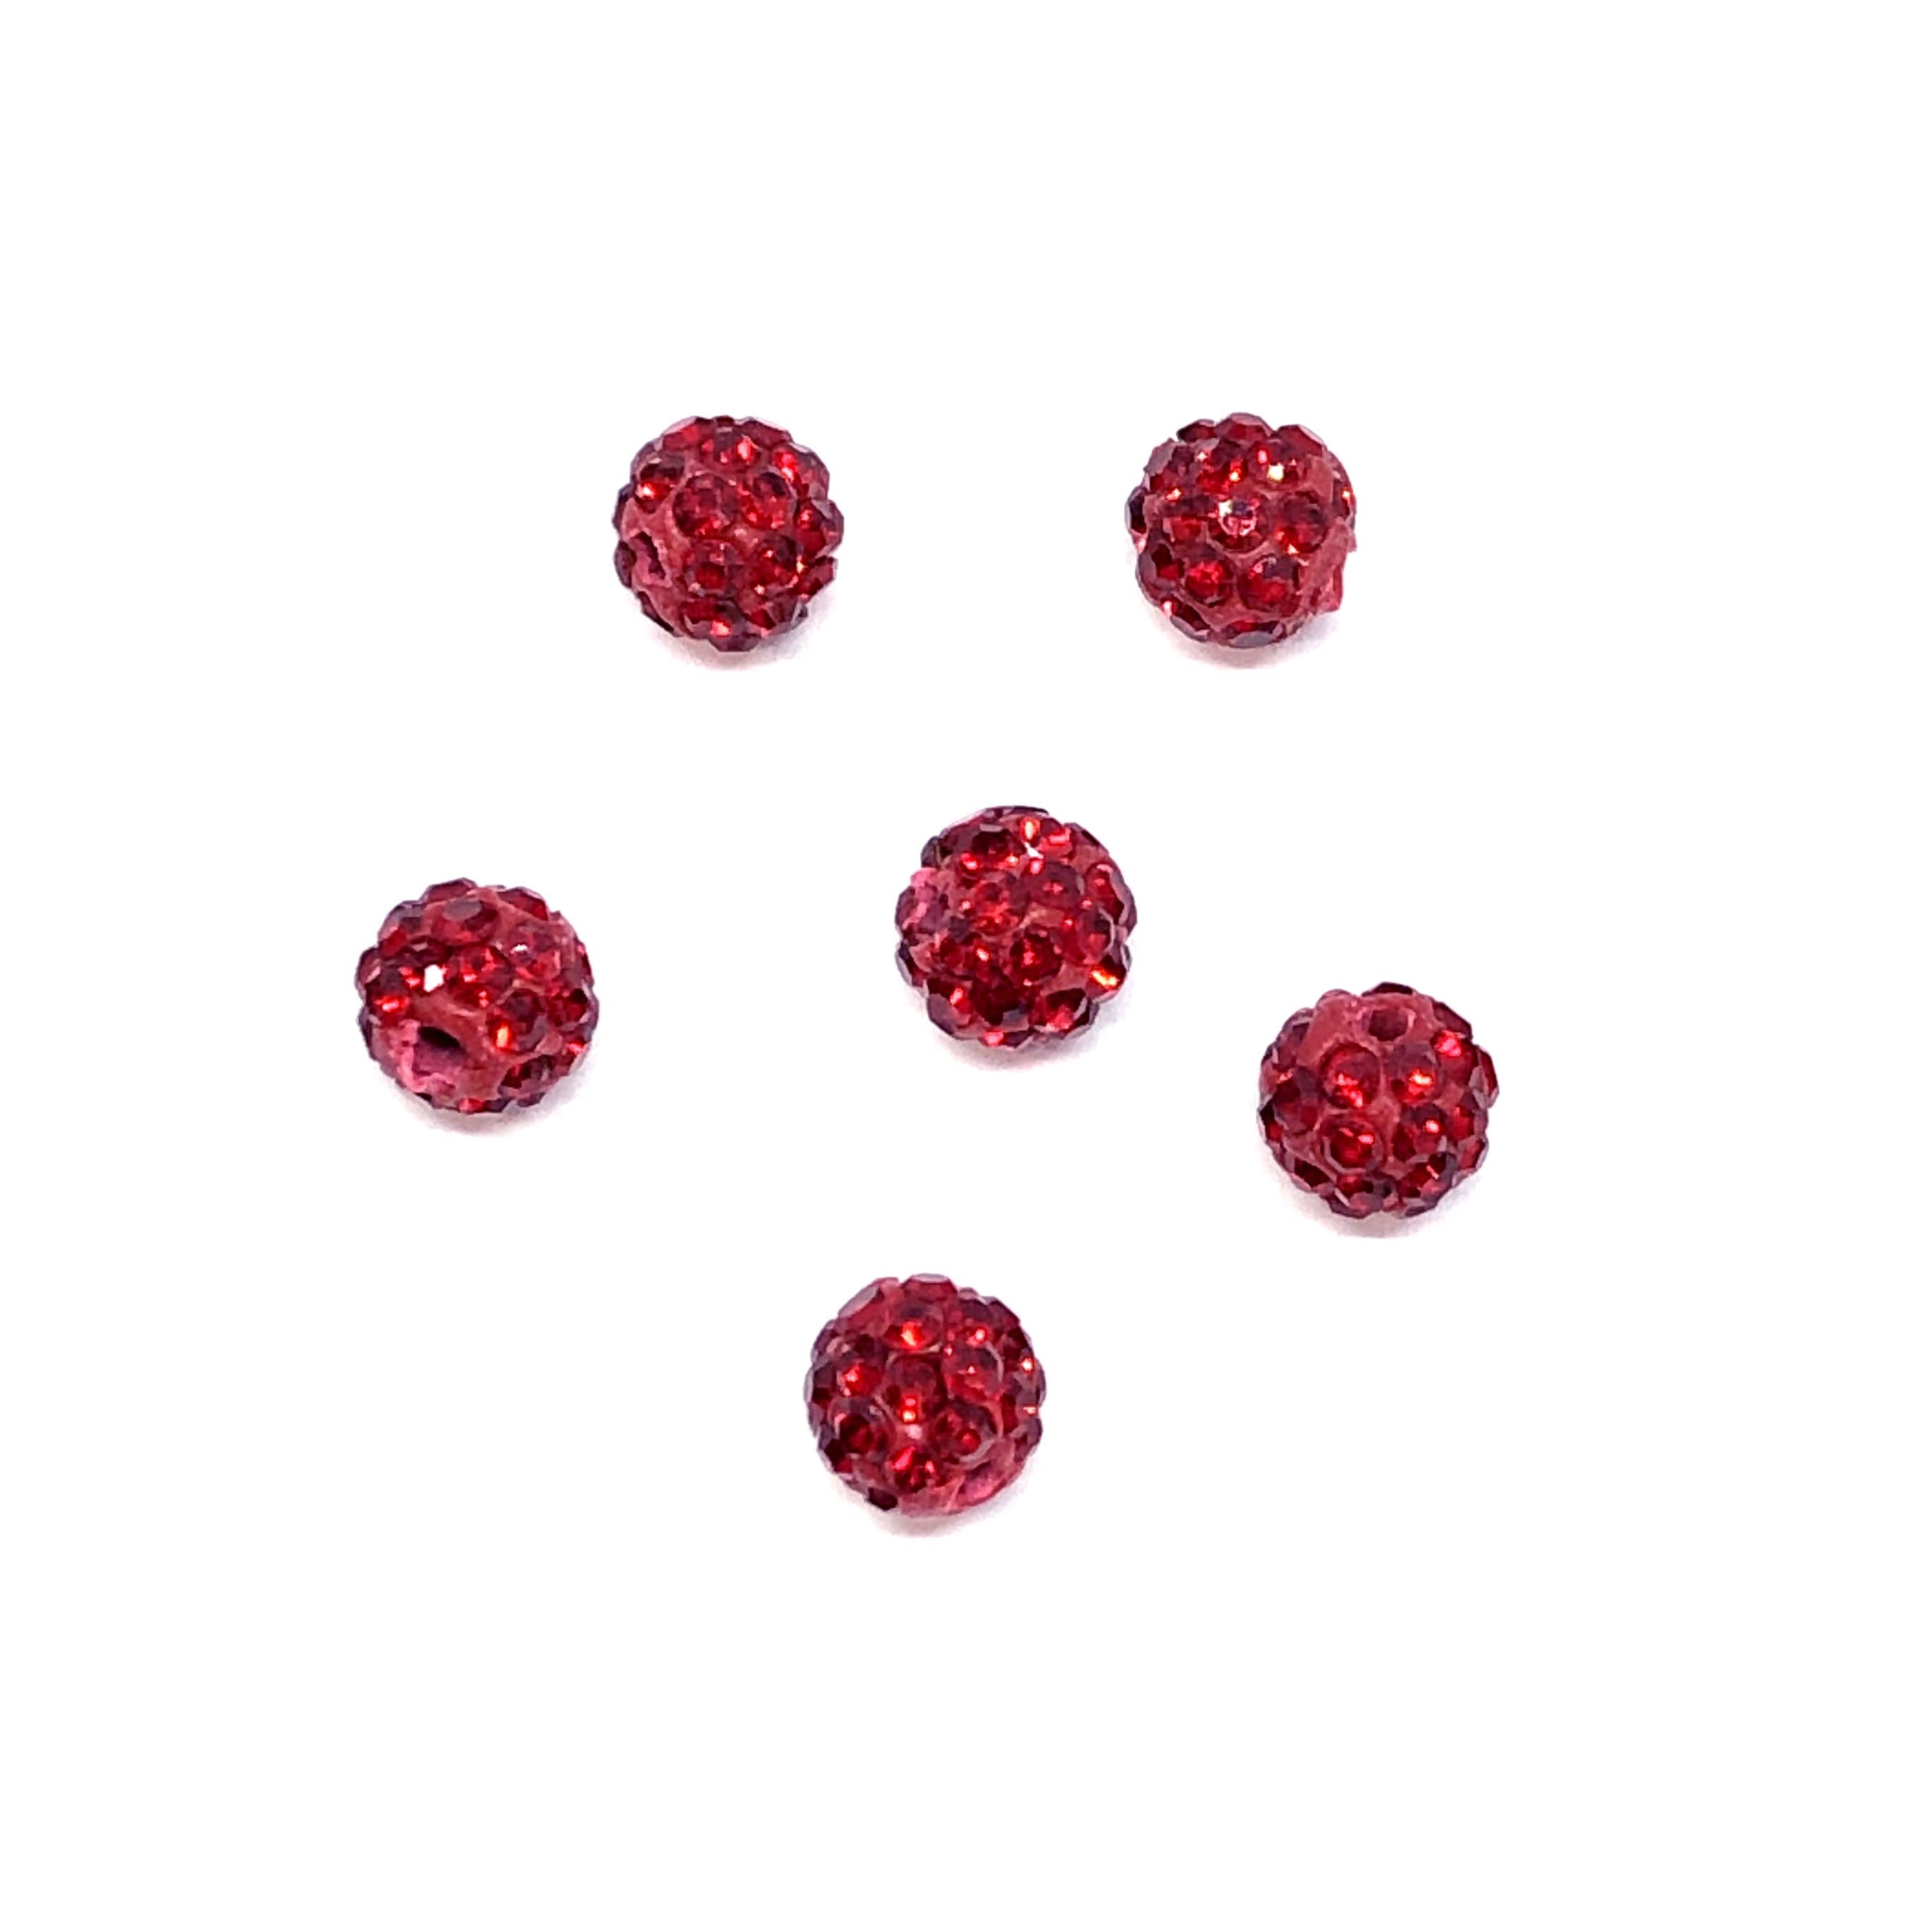 Rhinestone Pave Beads, Red Beads, 6mm, 0671, ball beads, glass beads, crystal stones, round beads, crystal beads, faceted, bead, glass, b'sue boutiques, jewelry making, jewelry findings, vintage supplies